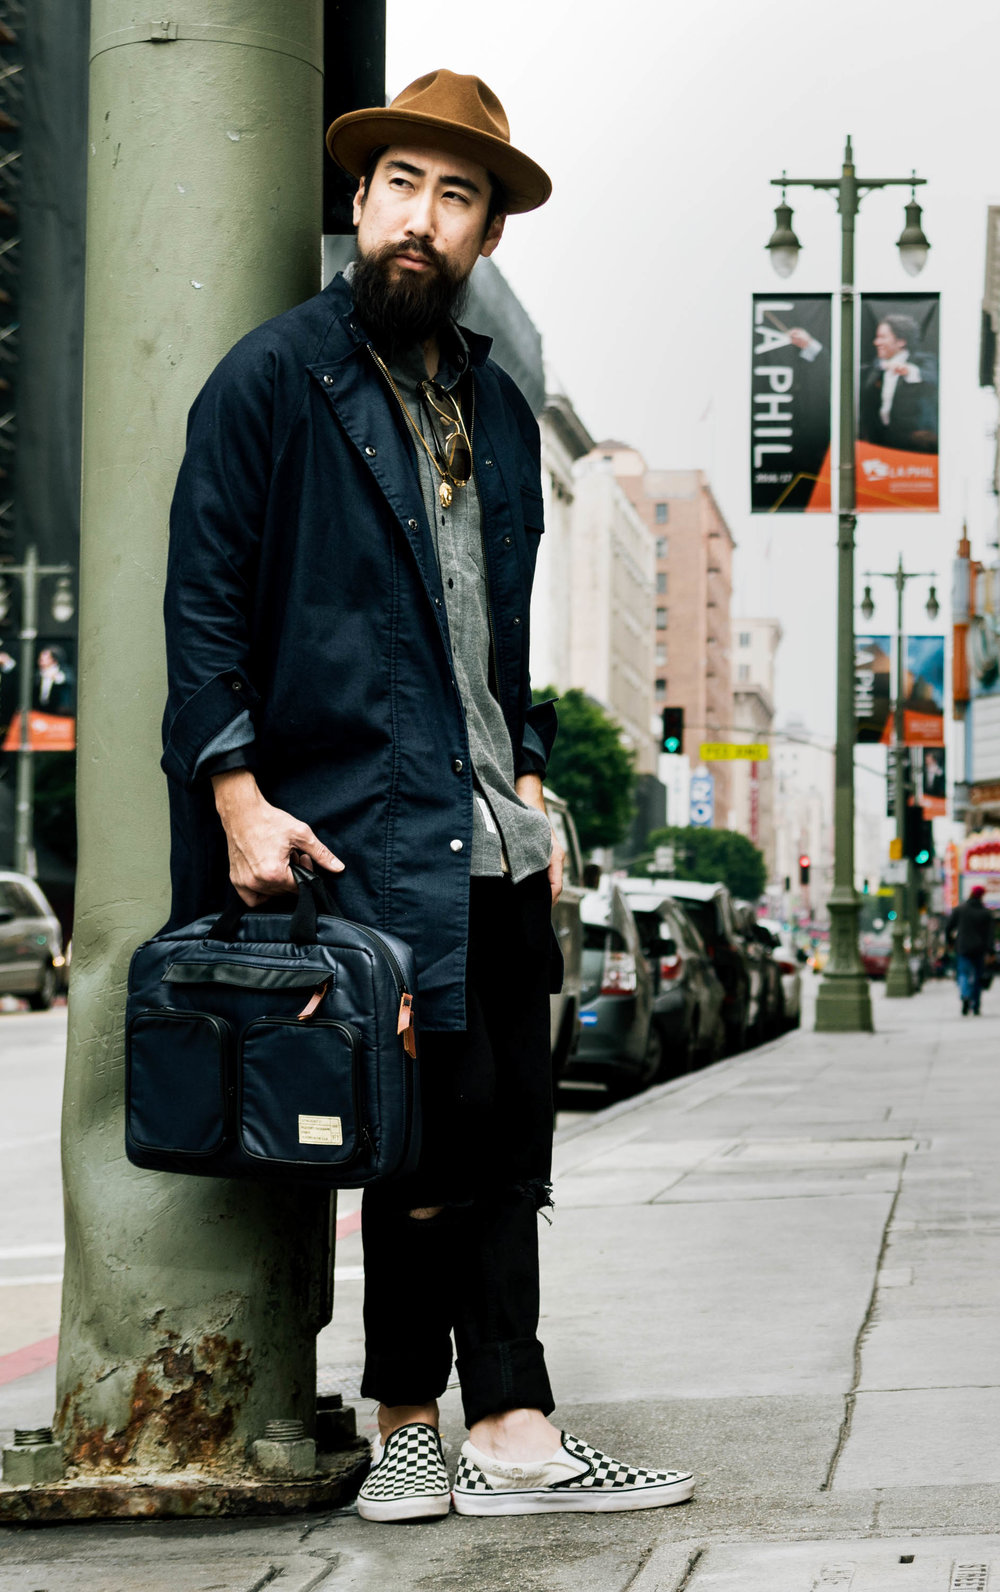 justfeng ryanfeng quest crew menstyle ootdmen fashion mens asian hipster beard